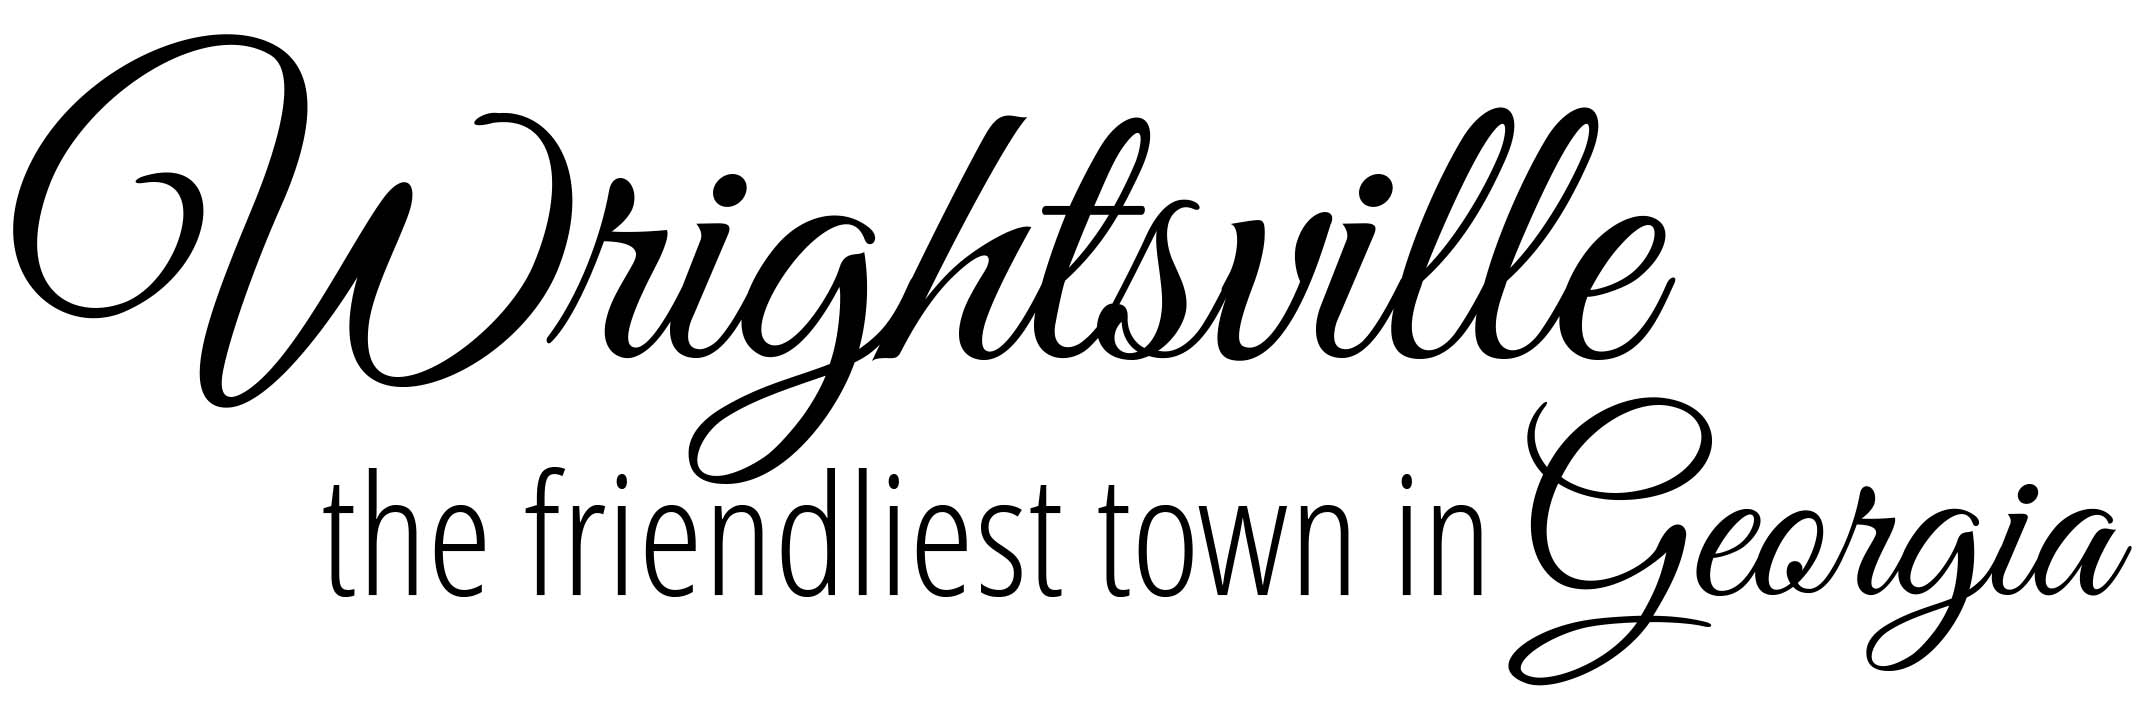 i-City-of-Wrightsville